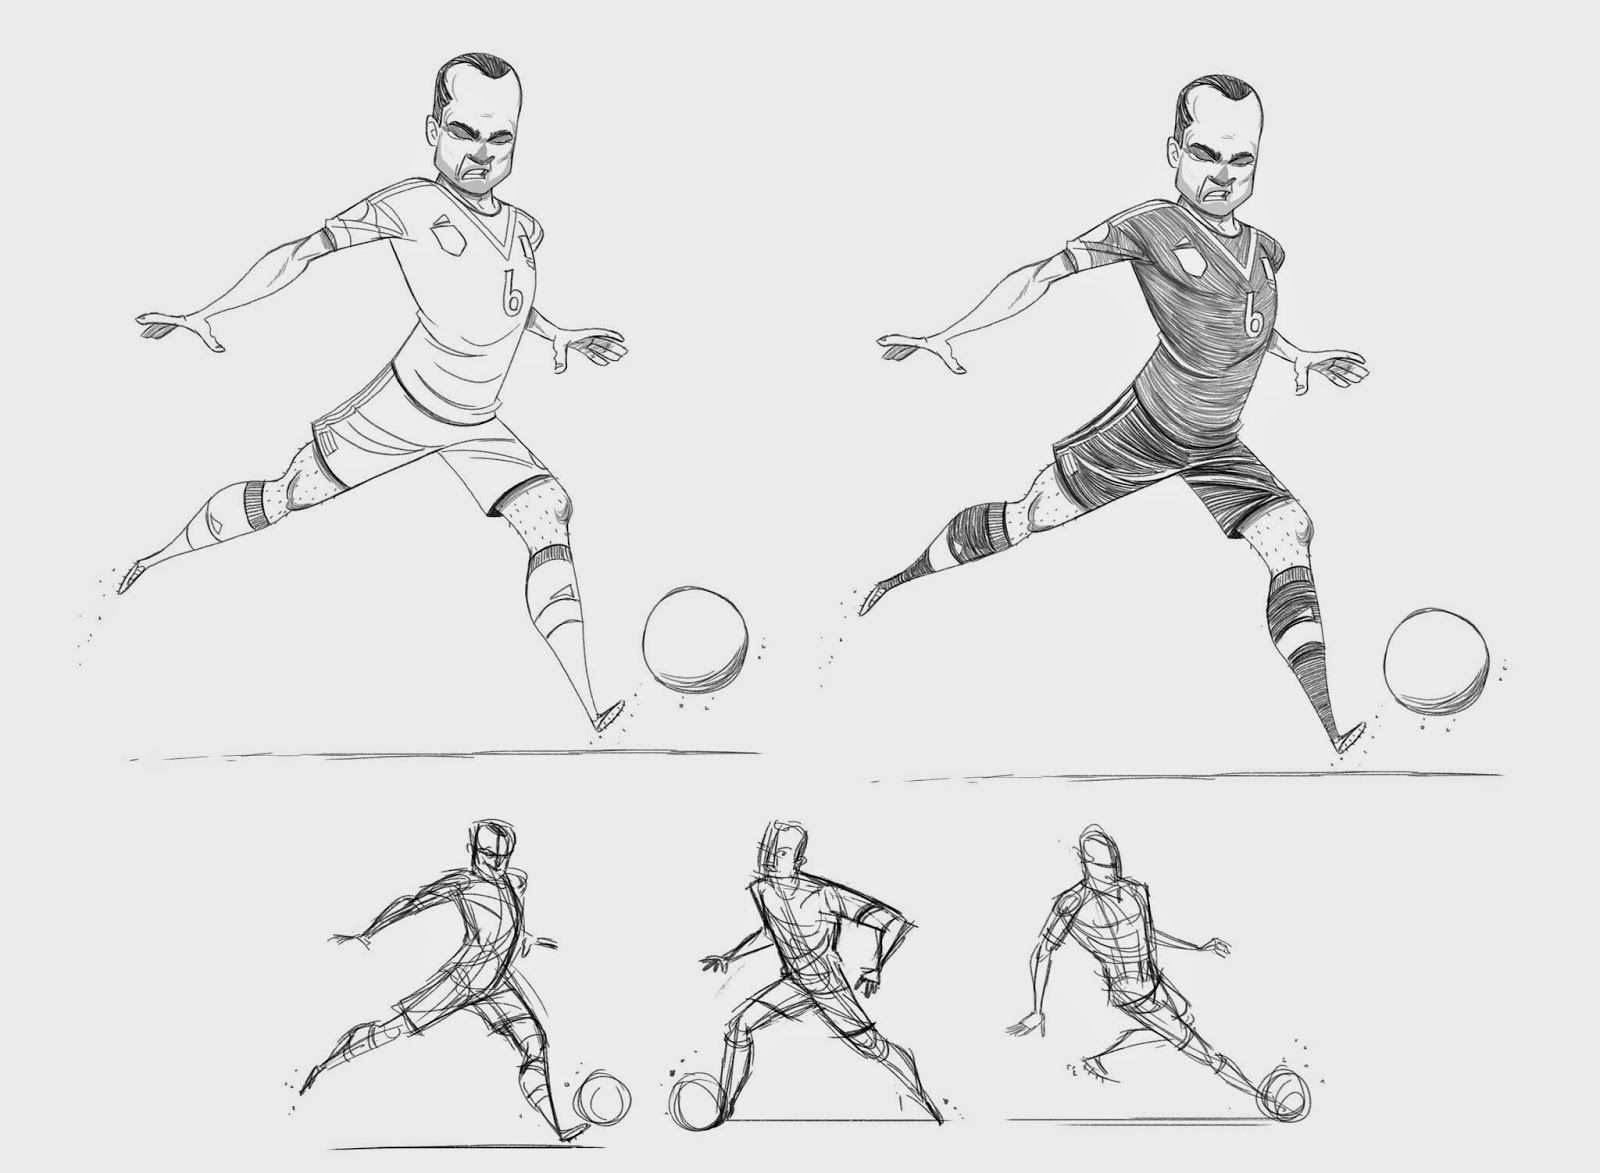 Espn U College Town Character Colors On Behance Football Poses Soccer Drawing Manga Poses